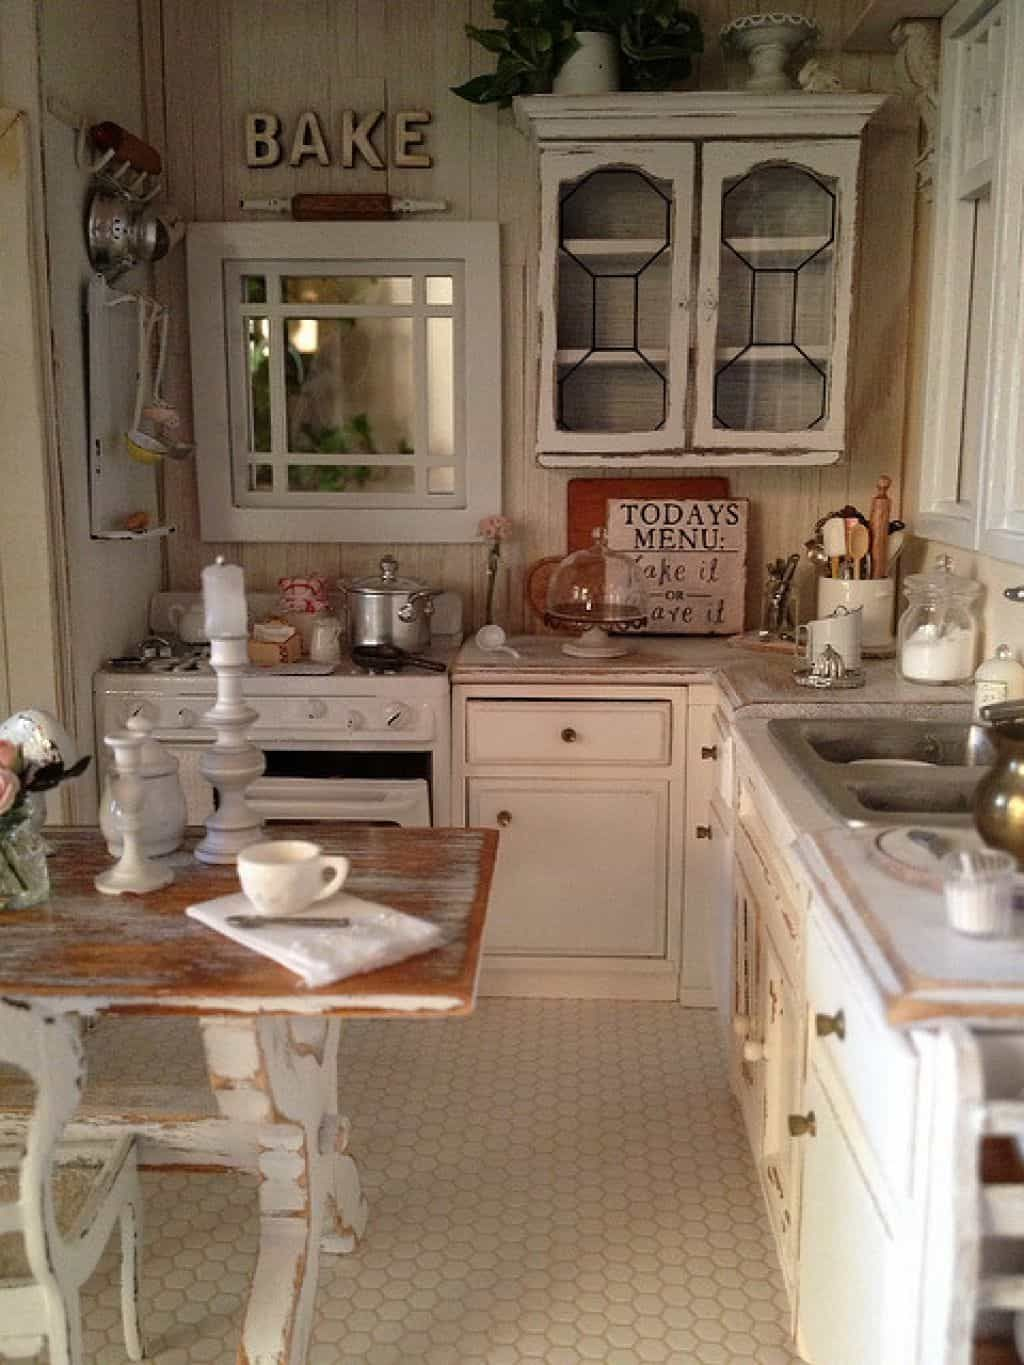 Welcoming Vintage Style Kitchen Chic Kitchen Decor Shabby Chic Kitchen Decor Shabby Chic Kitchen